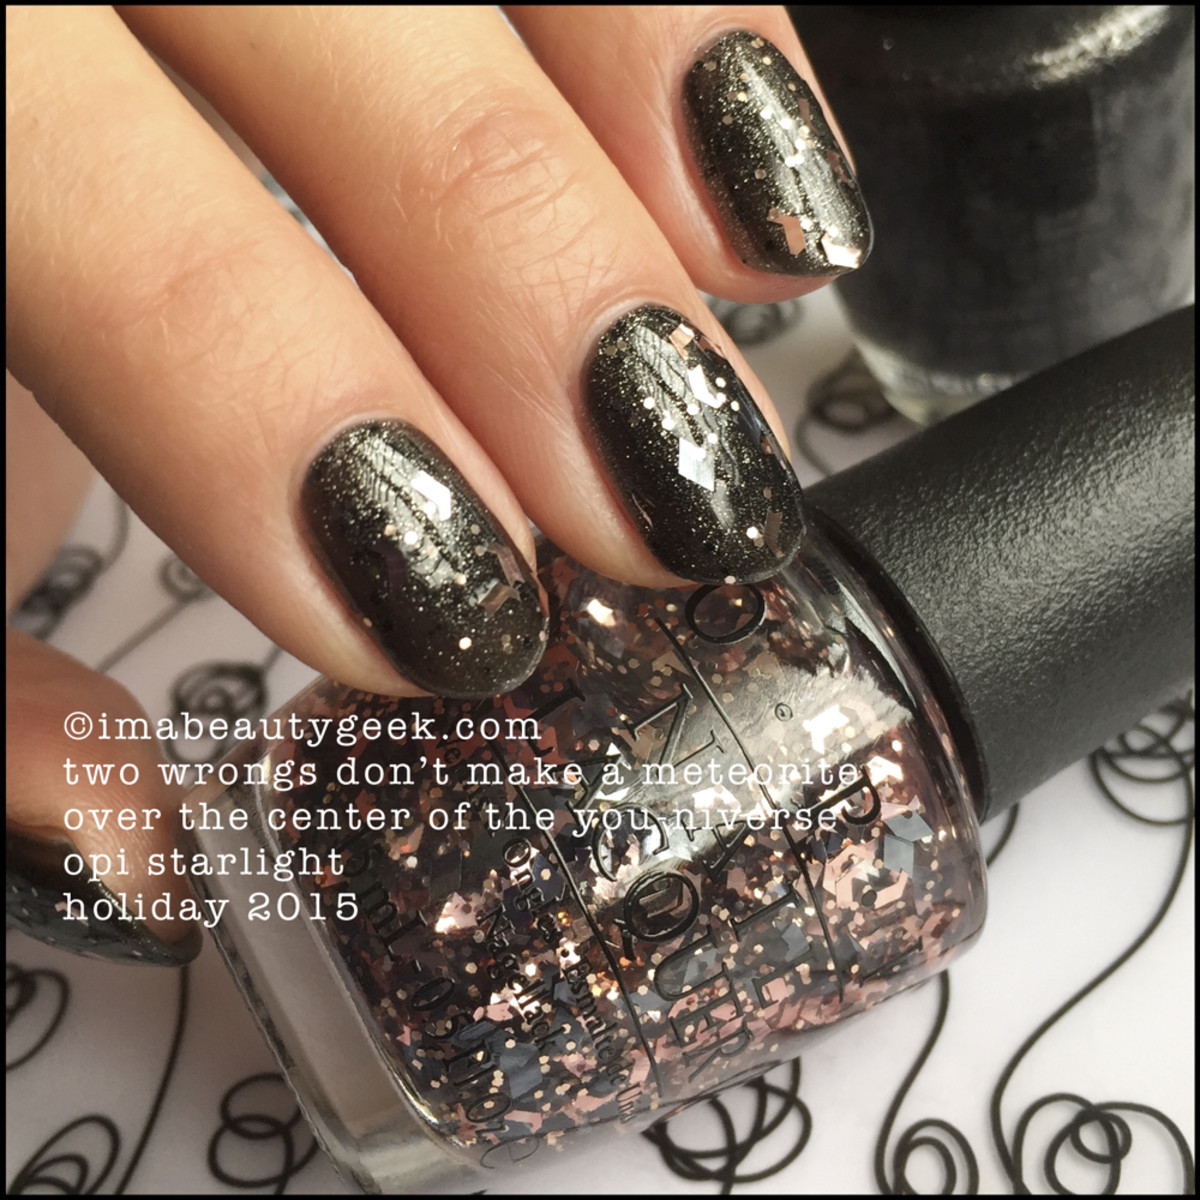 OPI Two Wrongs Don't Make a Meteorite over OPI The Center of the You-niverse – OPI Starlight Collection Holiday 2015